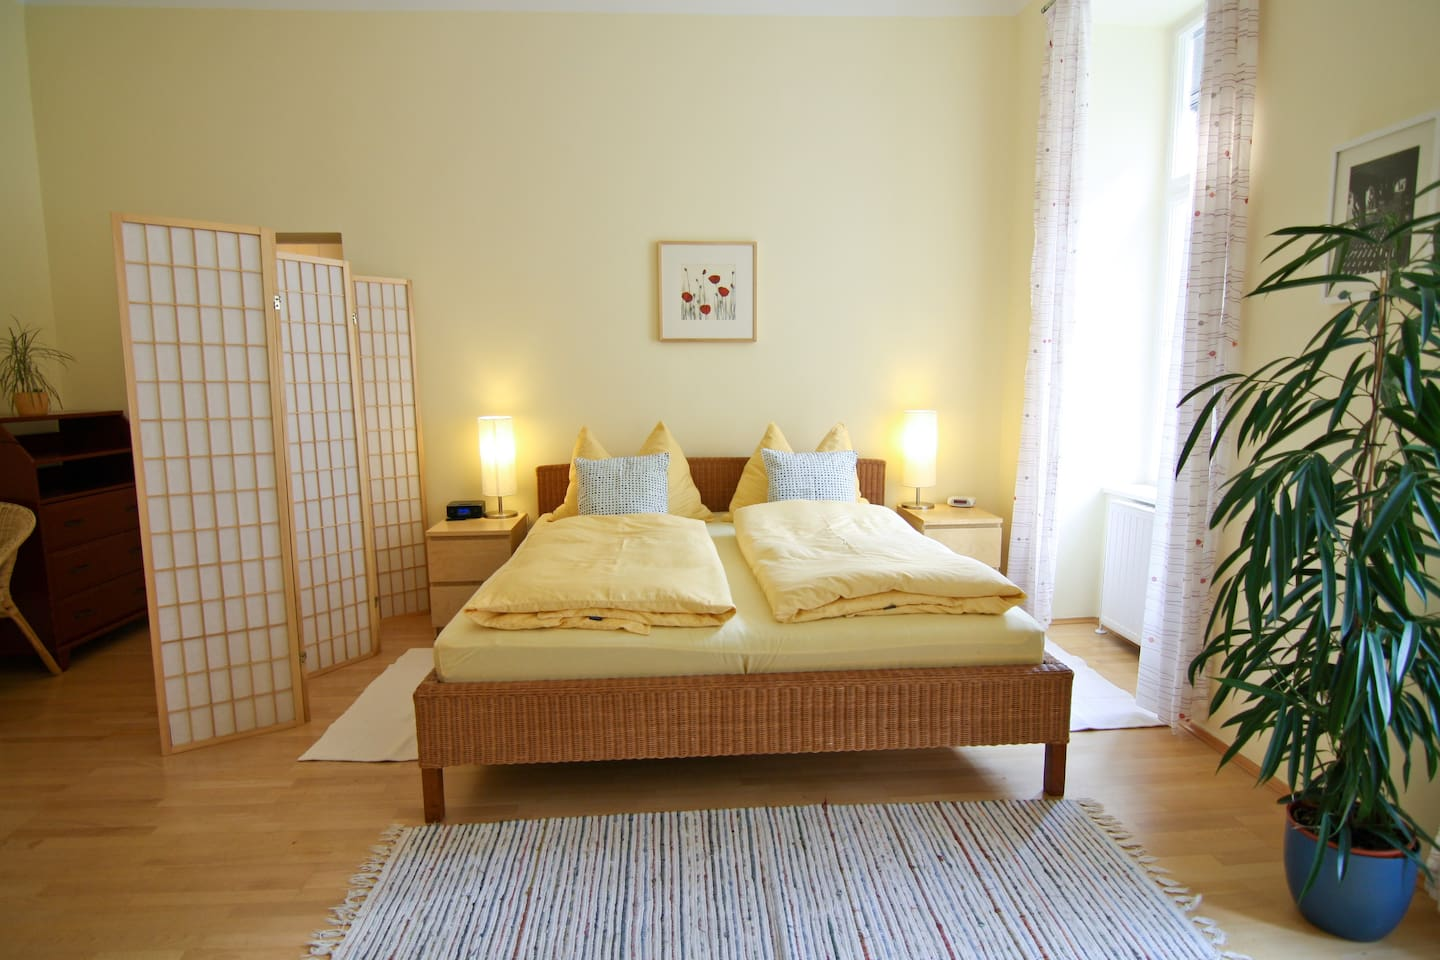 big bed and living room with double bed